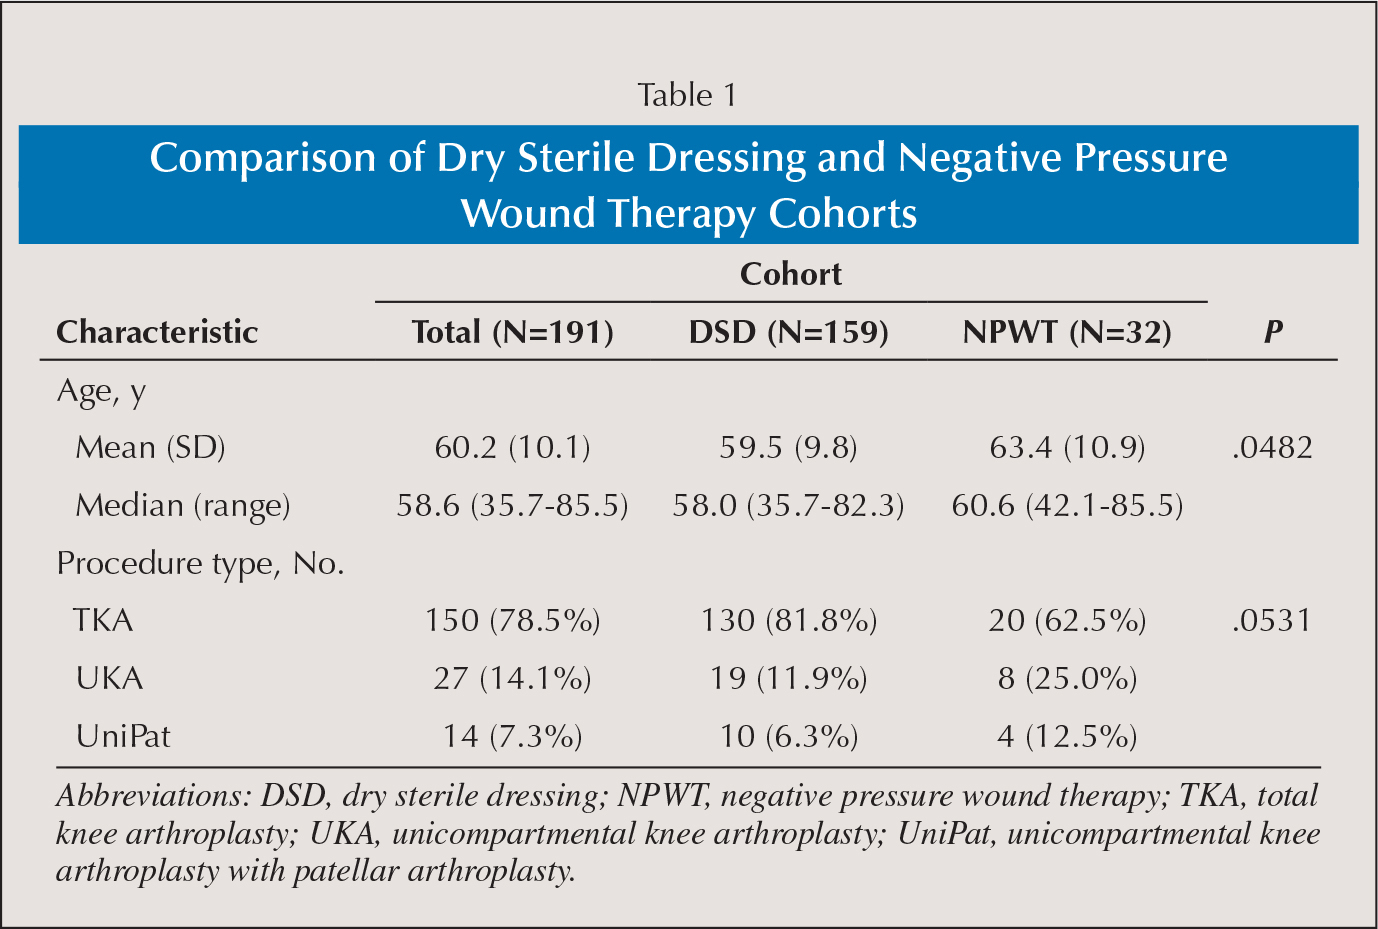 Comparison of Dry Sterile Dressing and Negative Pressure Wound Therapy Cohorts